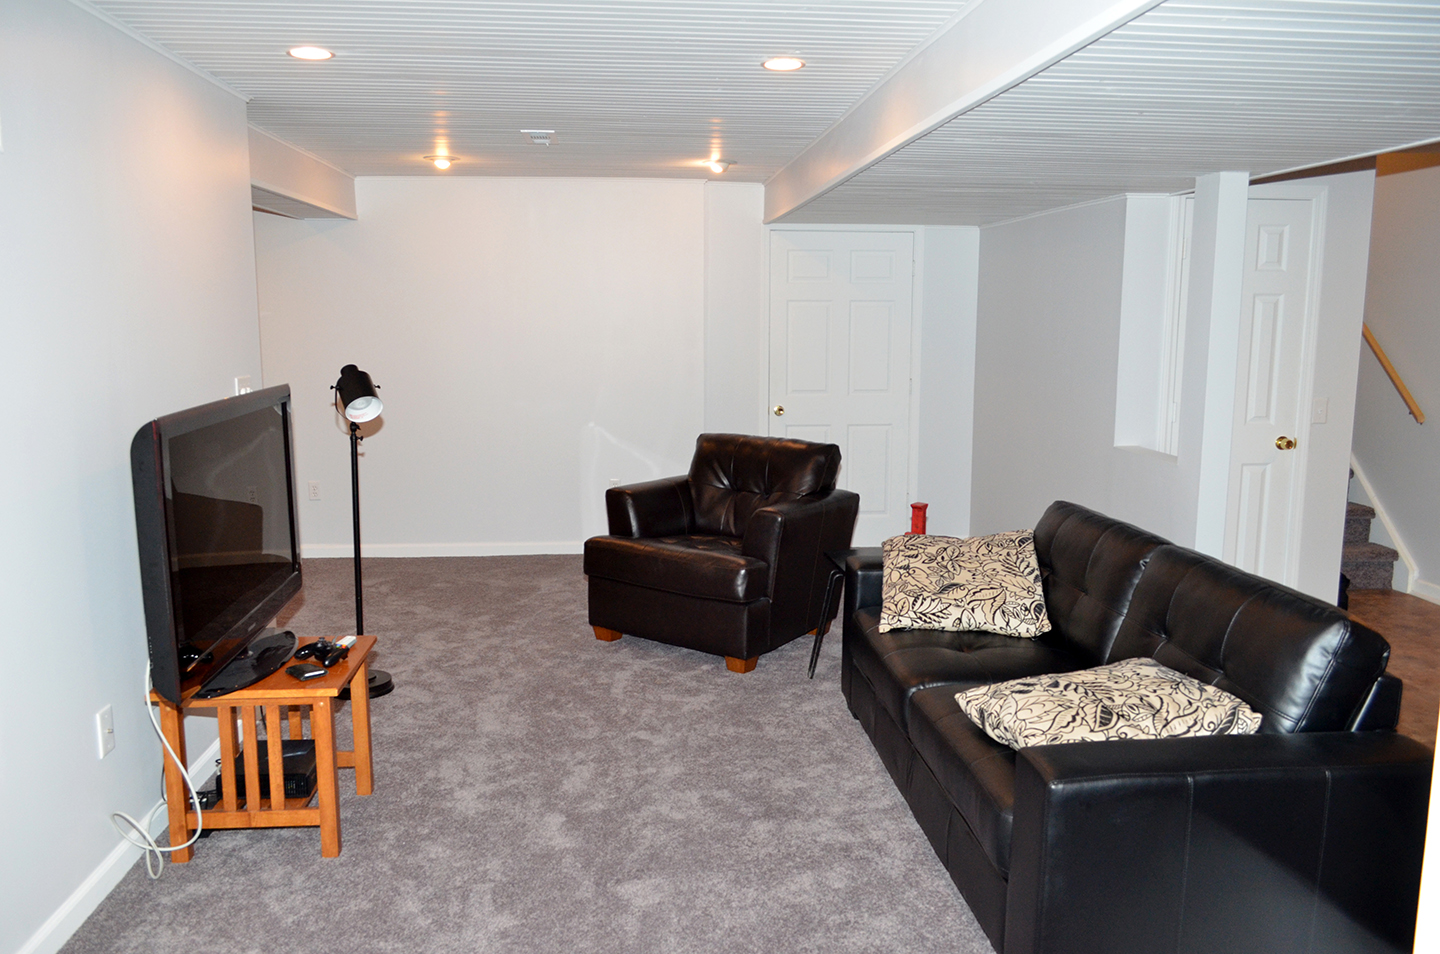 Basement Remodel With Kitchen And Bedroom Patriot Construction